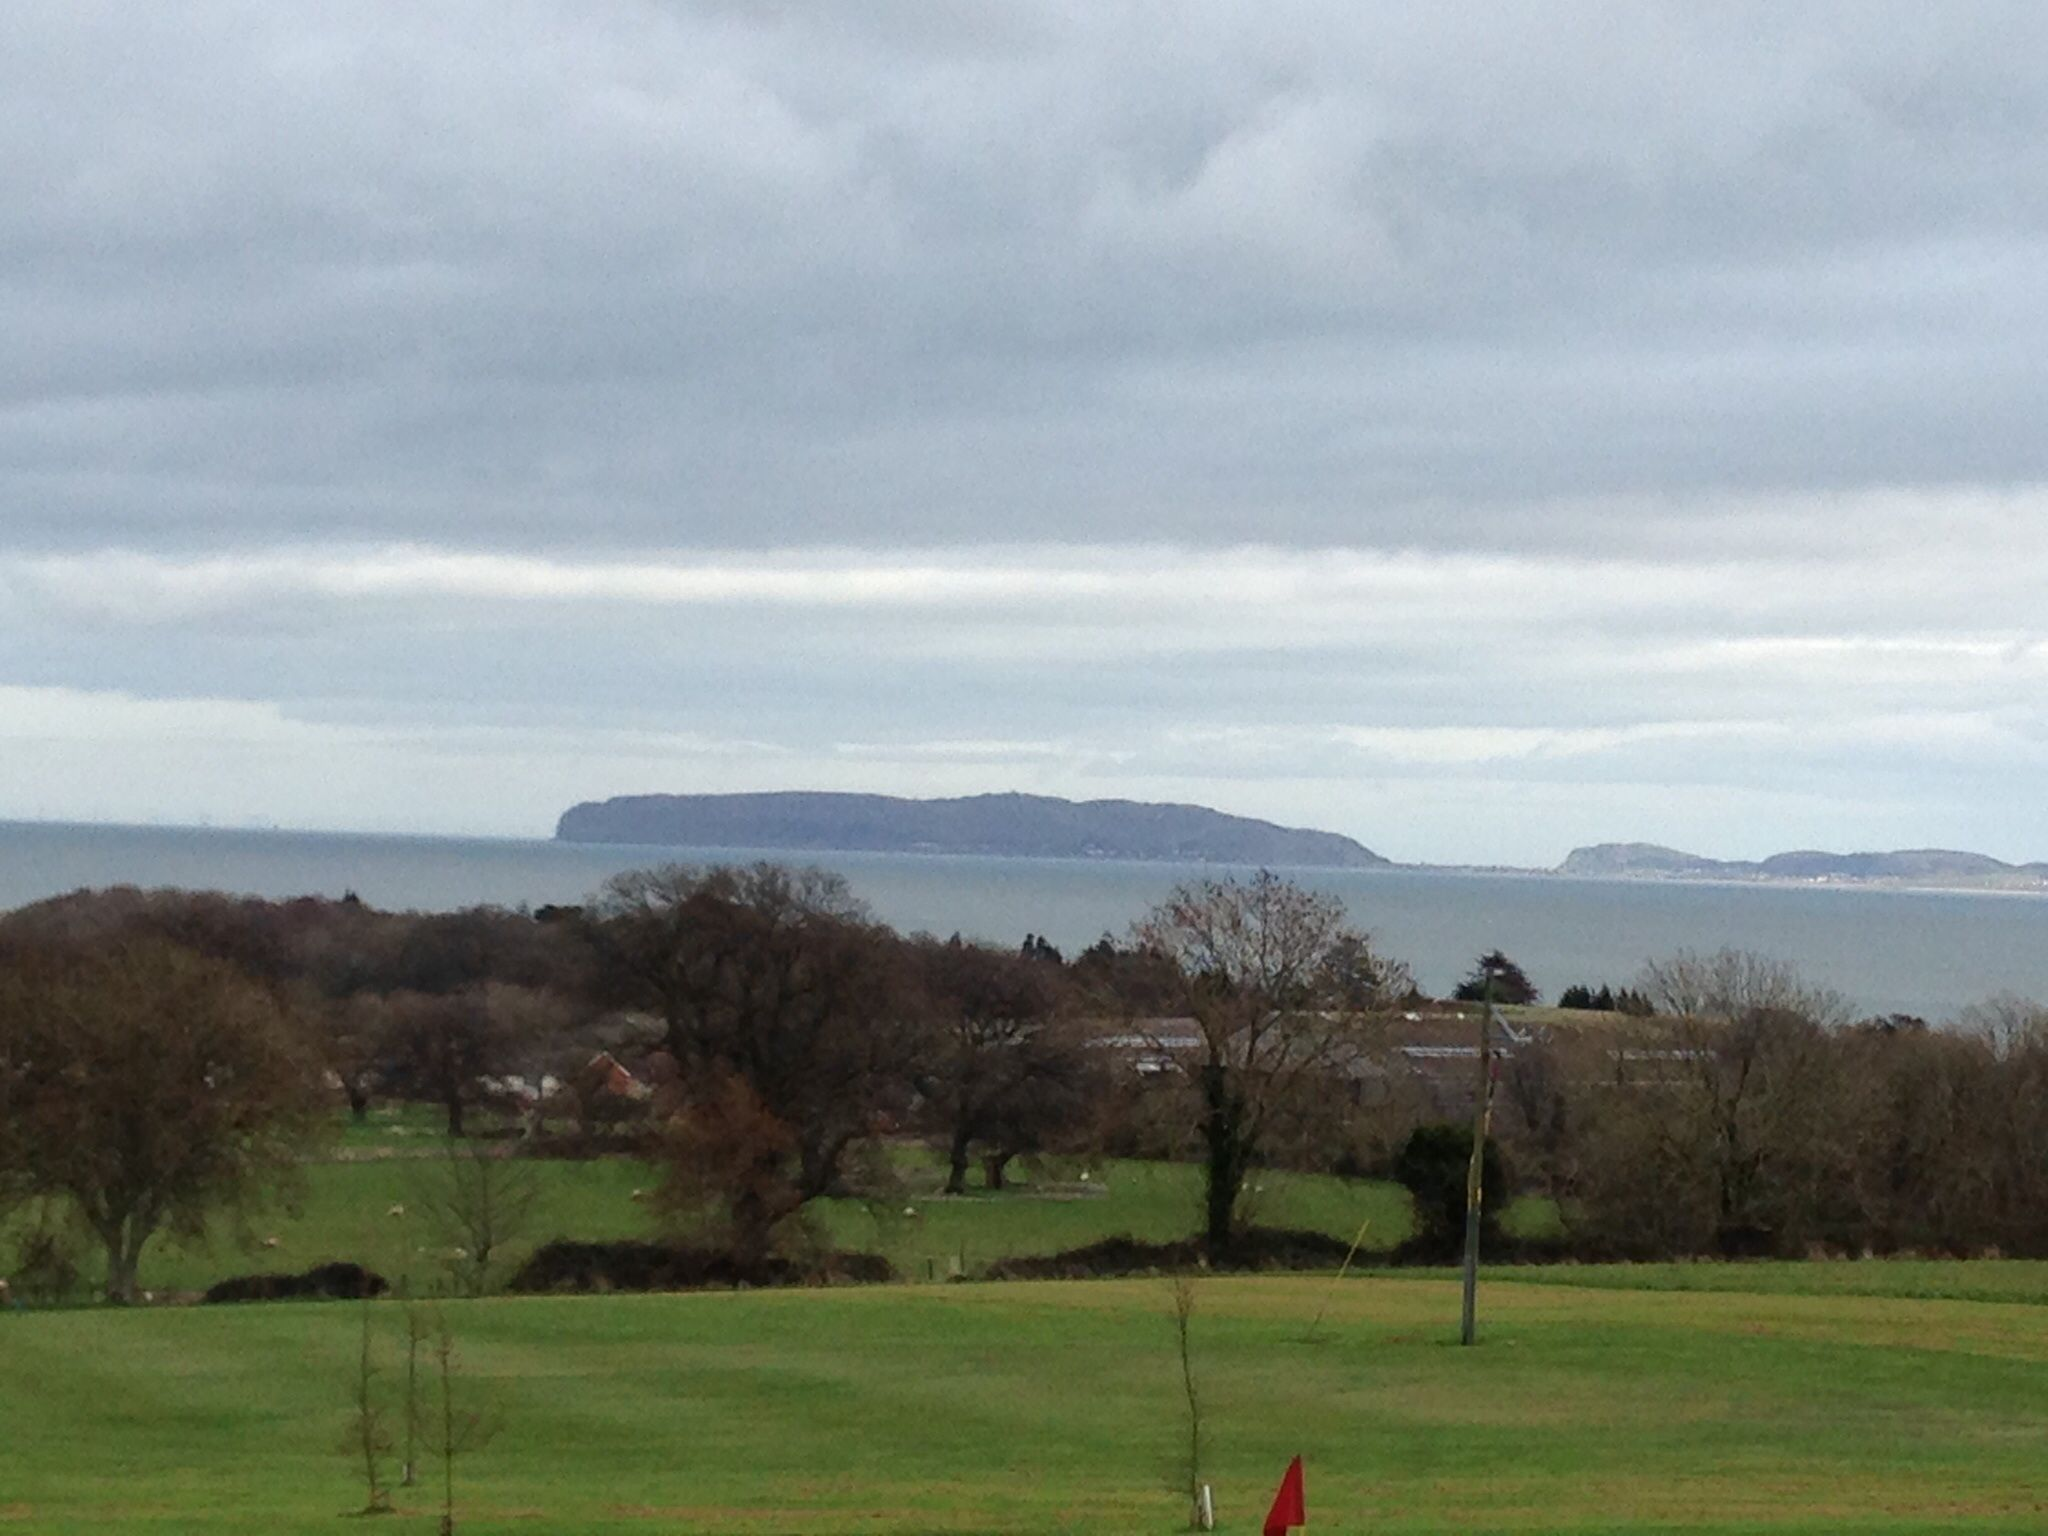 Henllys Golf Course.  Played with Ralph 19/3/14. Pretty course, with views of Menai Straits and Snowdonia. Some long walks between green and tee. Watch out for ditches and ponds.